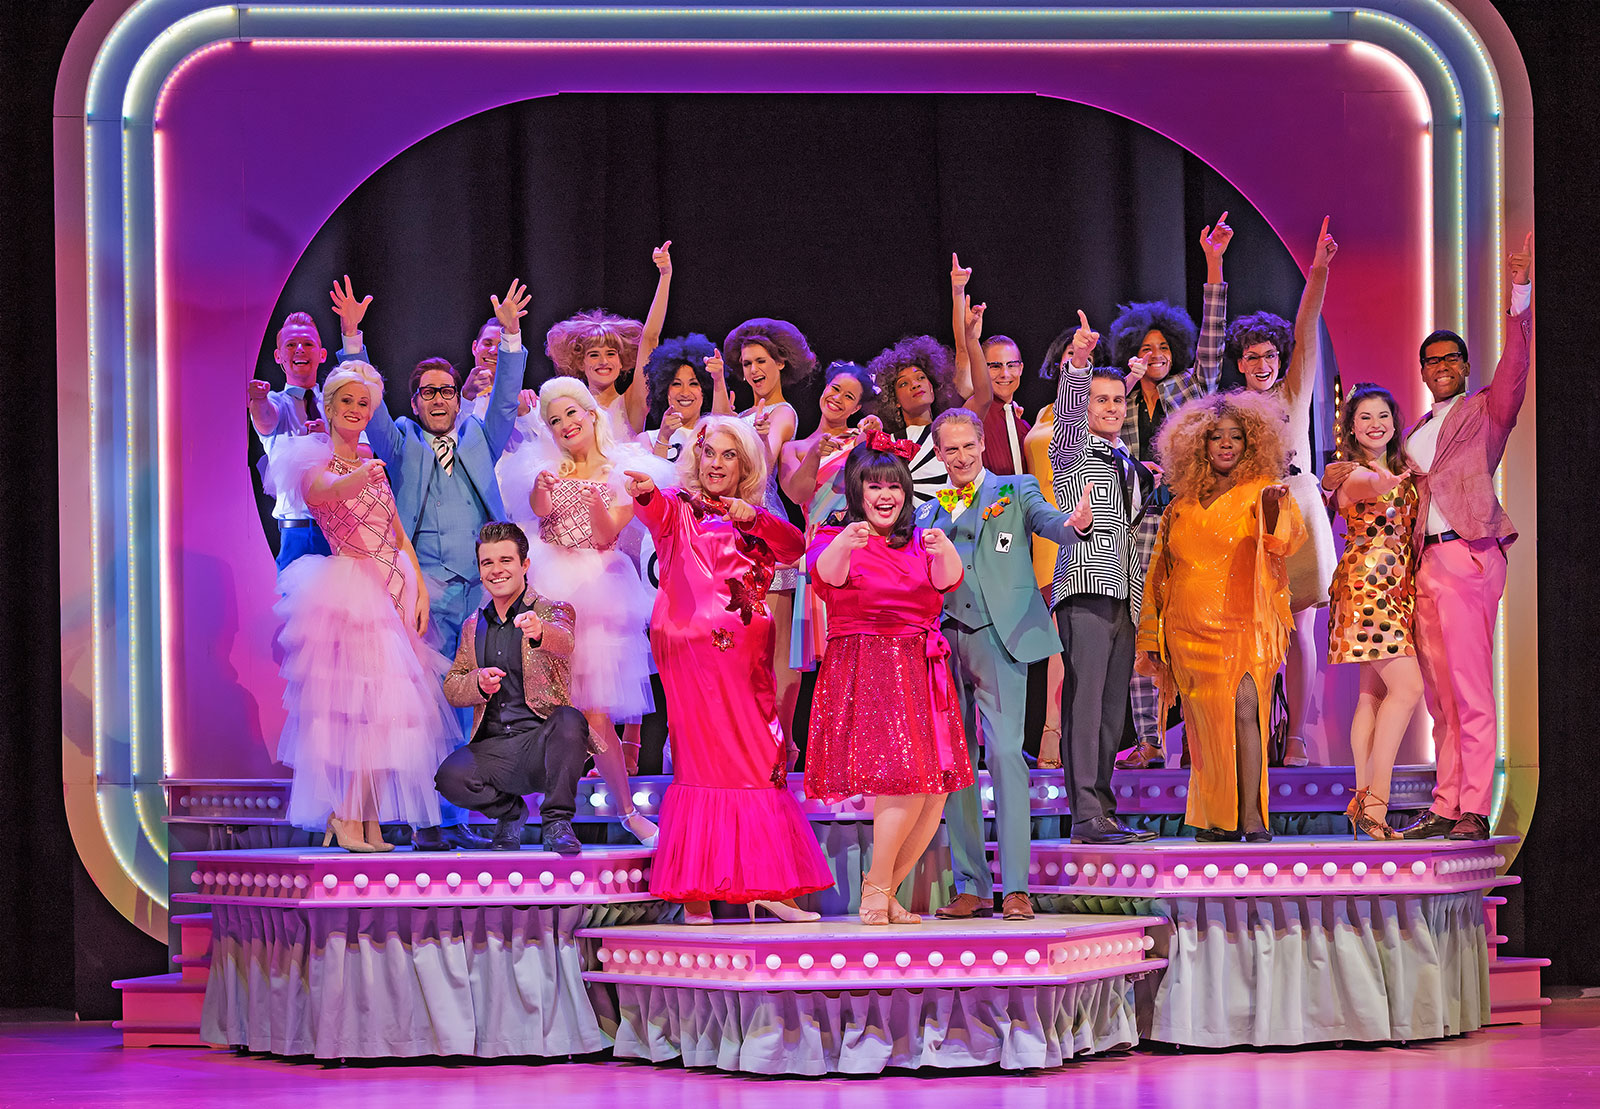 hairspray_cofo-concertbüro-oliver-forster